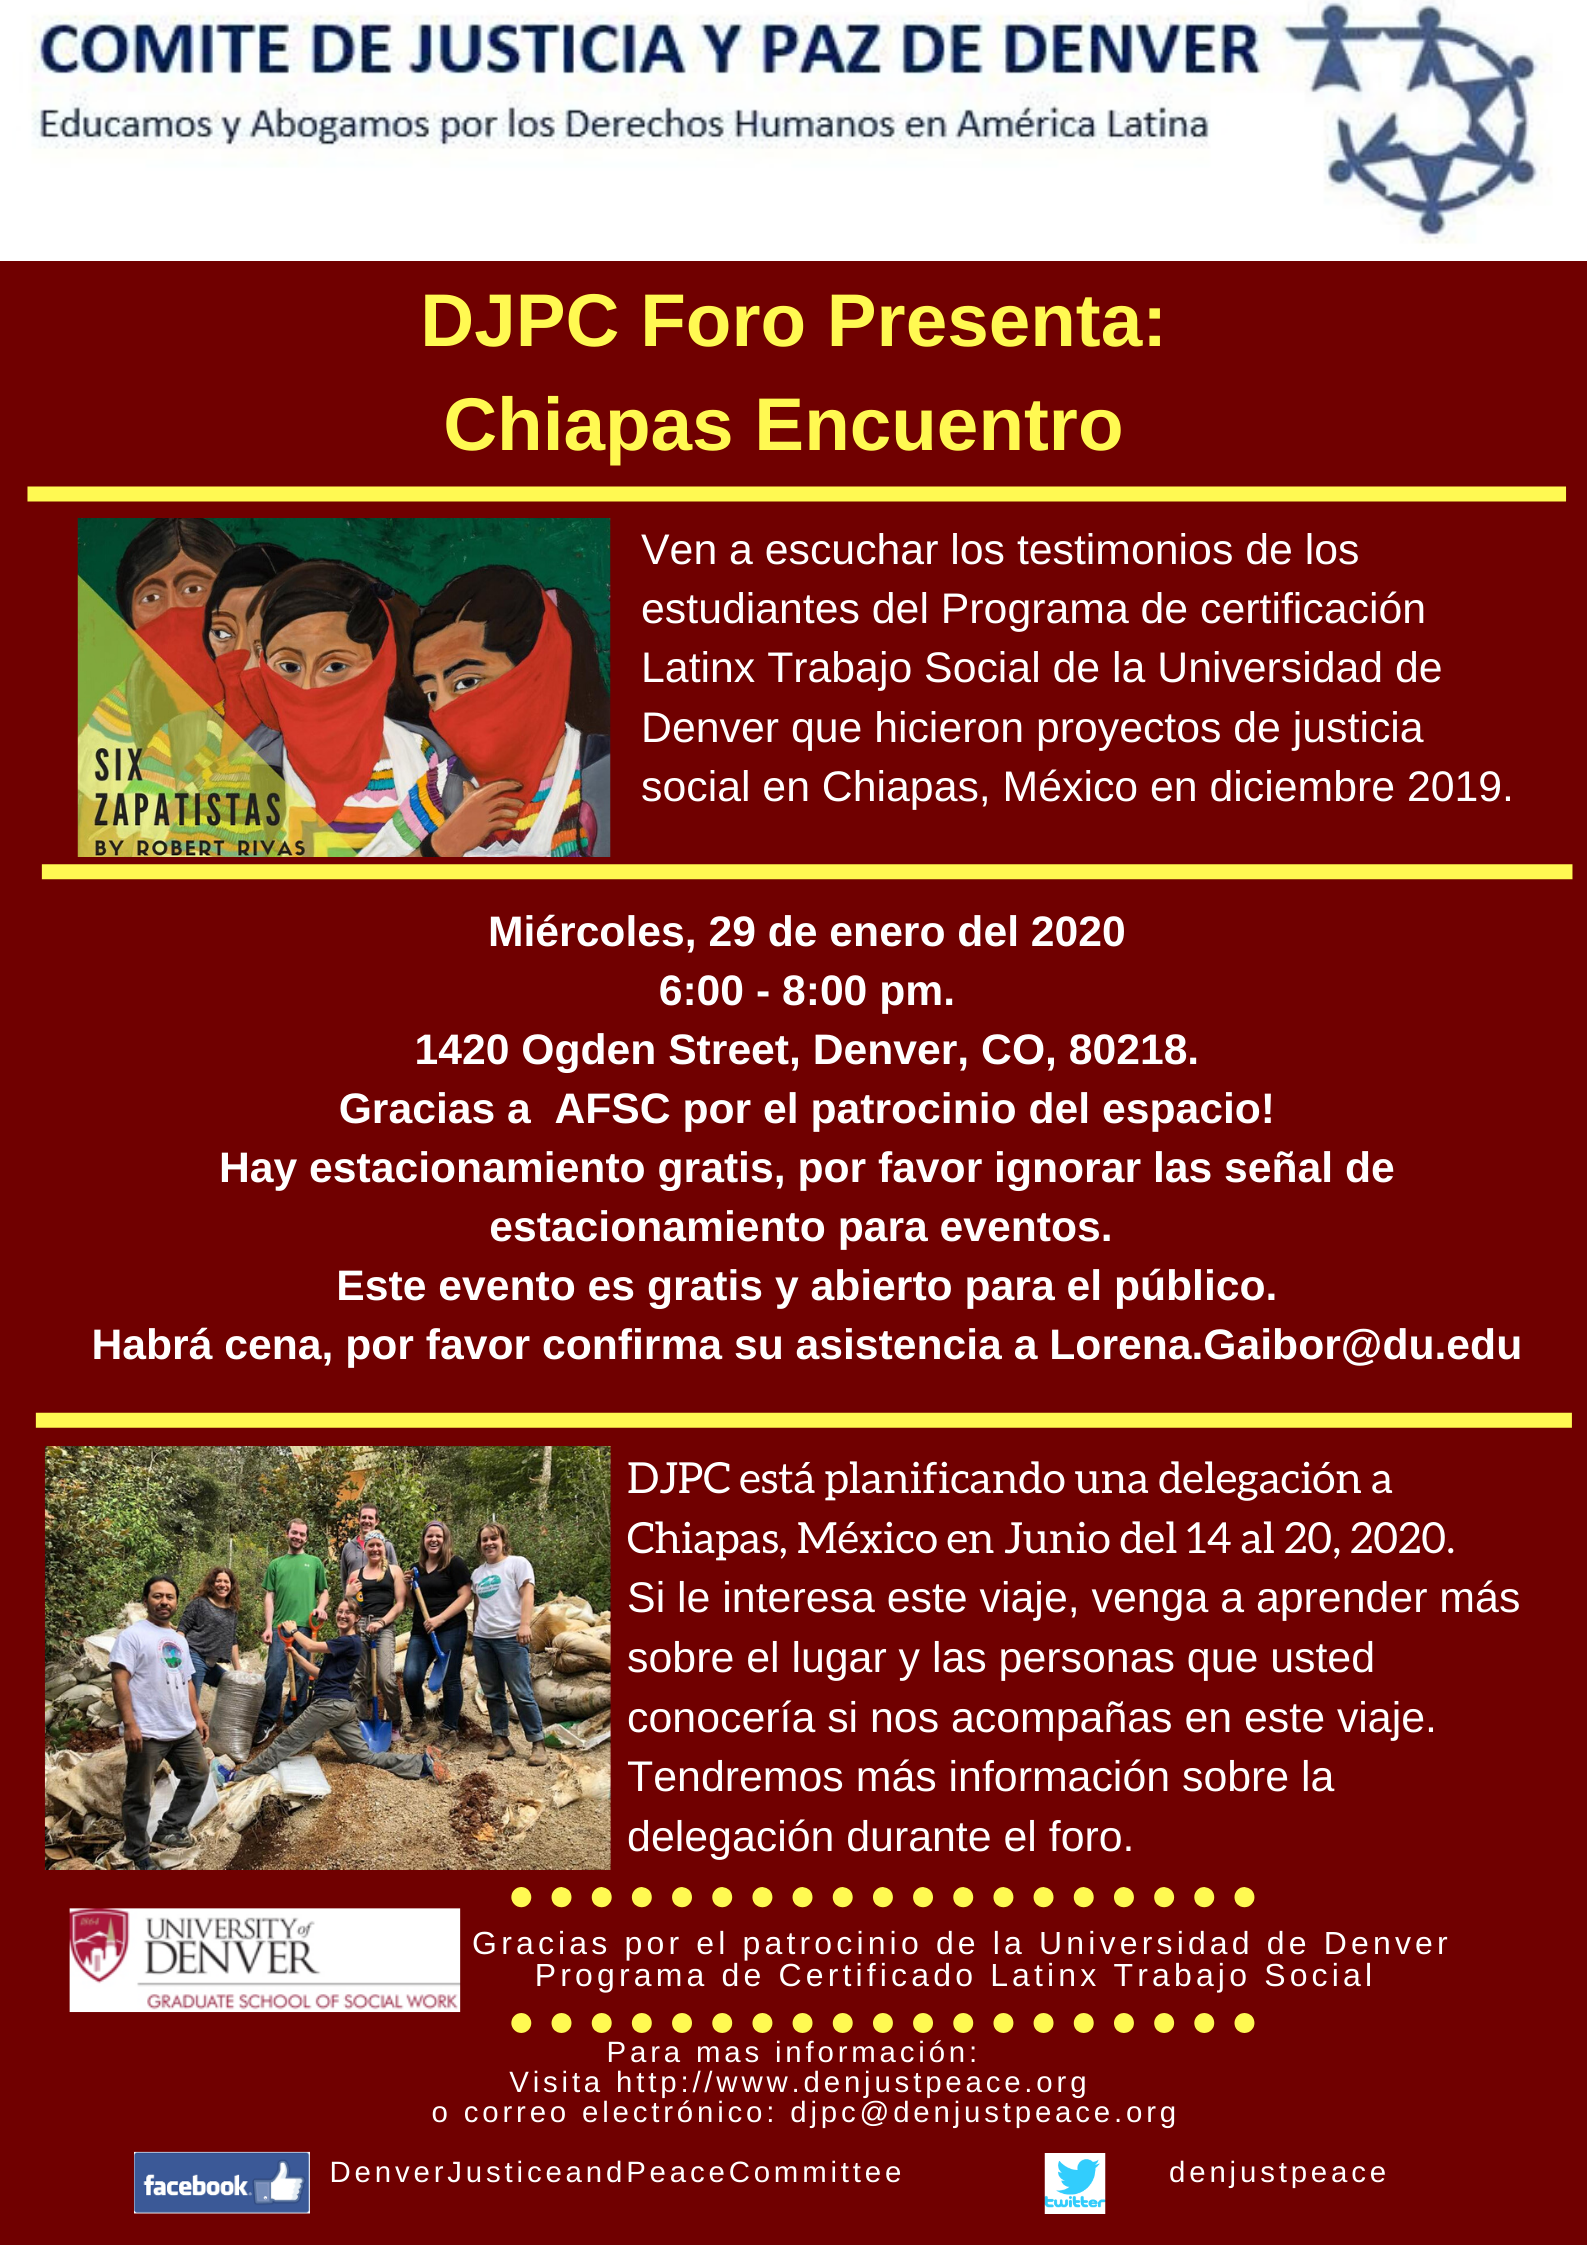 Forum: Chiapas Encuentro. January 29th at 6:00pm